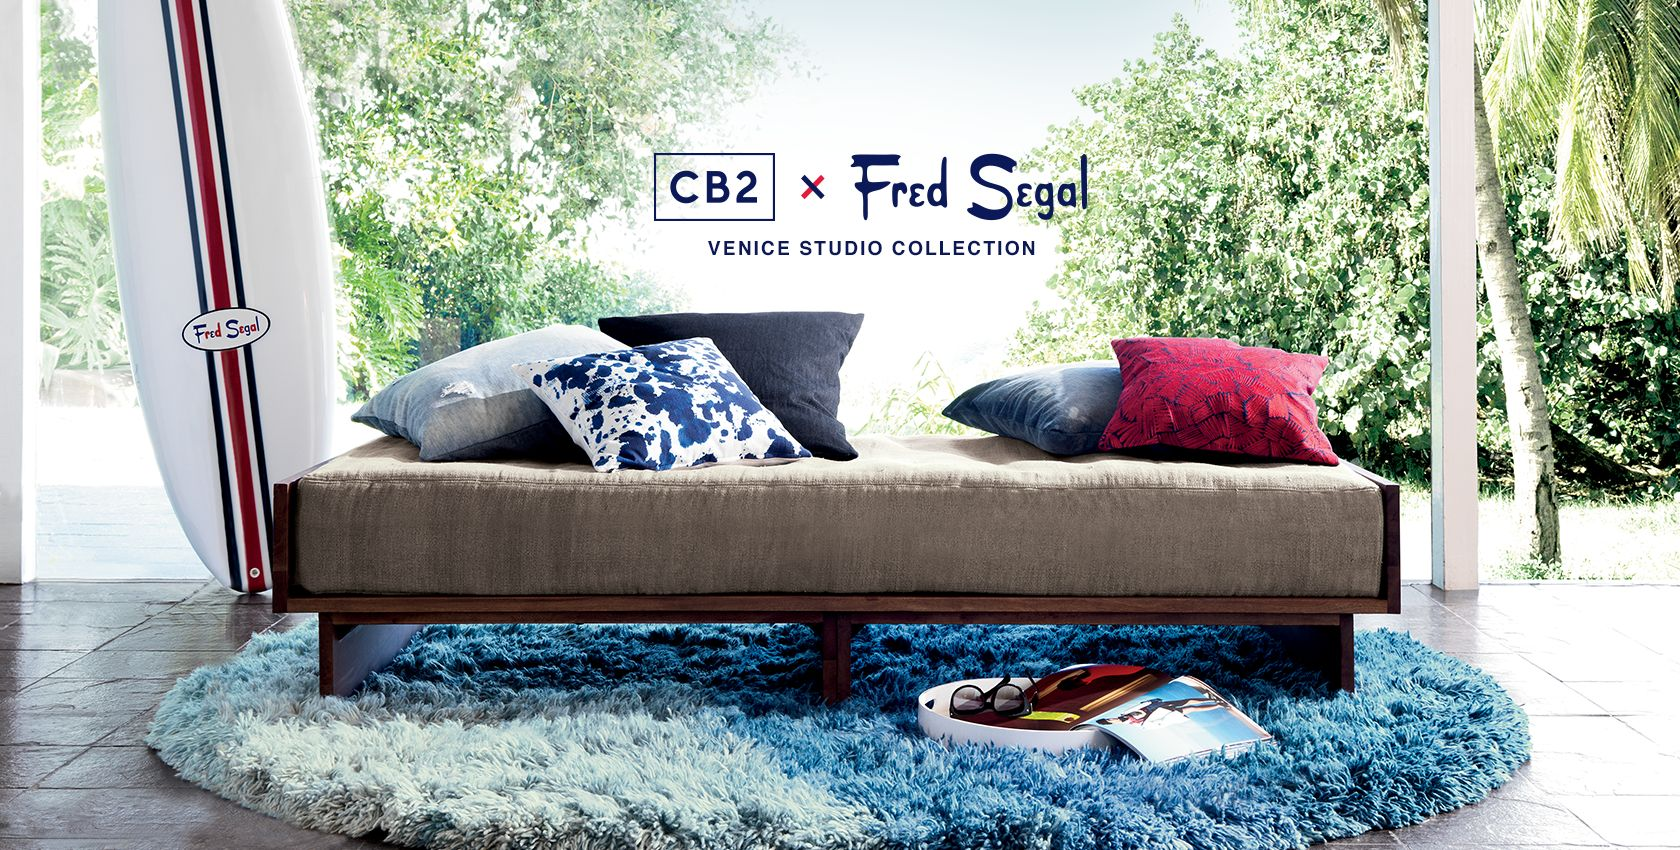 Stores Like Cb2 Fred Segal X Cb2 Christian Dare Edited